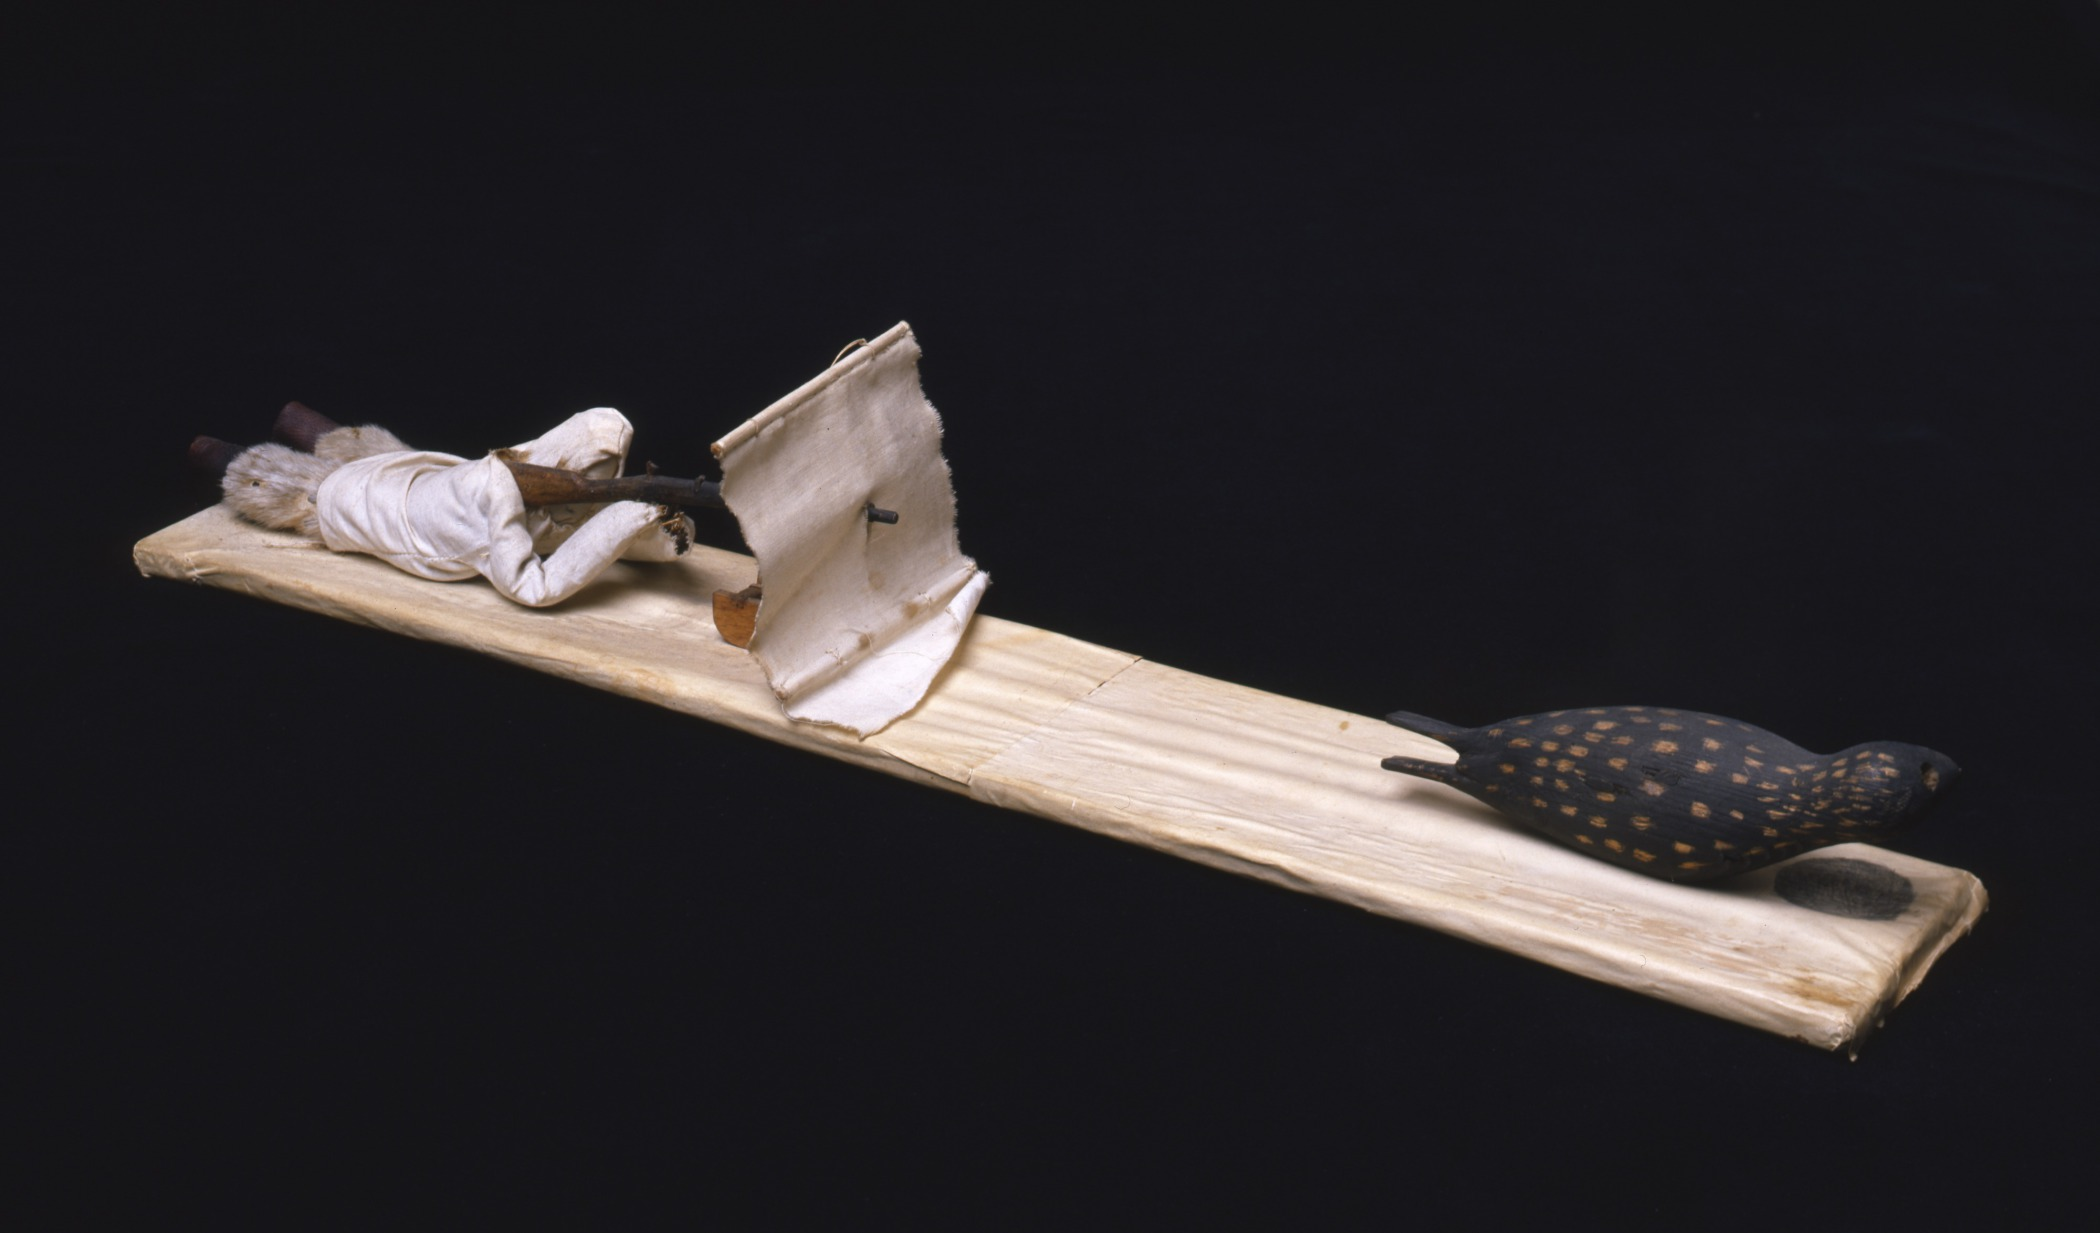 Kalaallit (West Greenlandic Inuit), souvenir model of a man seal hunting in the spring using a blind and a gun stand, early 1930s. Wood, paper, cloth, seal fur, sealskin, commercial thread, and glue, 2 9/16 × 3 3/4 × 22 13/16 in. Hood Museum of Art, Dartmouth College: Gift of George Murphy, Class of 1941; 39.70.7906.